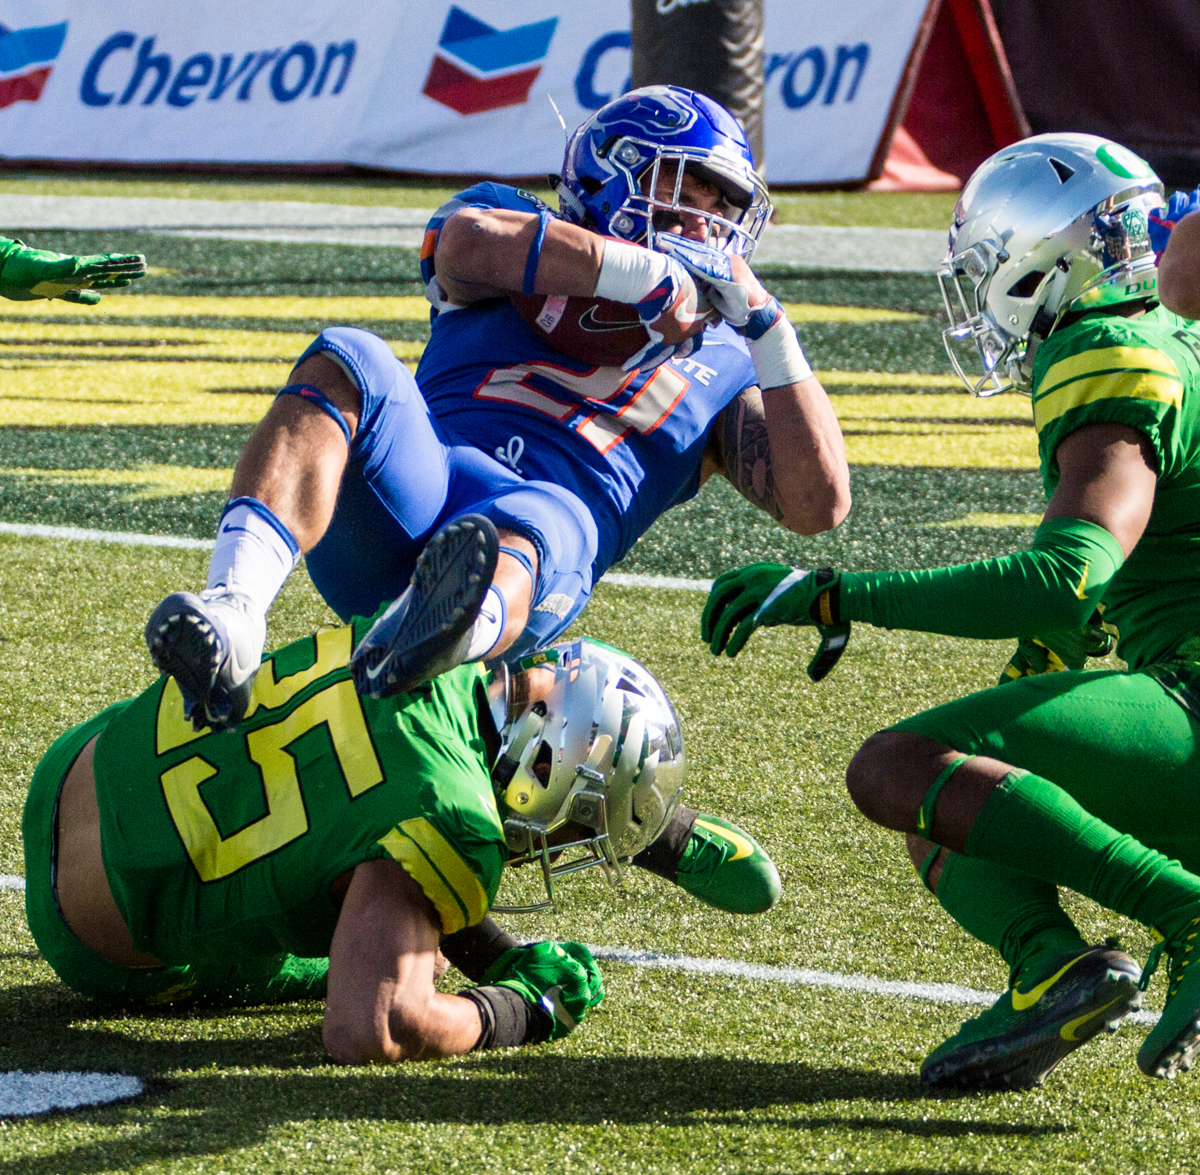 Boise State running back Ryan Wolpin (#21) falls over an Oregon defender. The Boise State Broncos defeated the Oregon Ducks 38 to 28 in the 2017 Las Vegas Bowl at Sam Boyd Stadium in Las Vegas, Nevada on Saturday December 17, 2017. The Las Vegas Bowl served as the first test for Oregon's new Head Coach Mario Cristobal following the loss of former Head Coach Willie Taggart to Florida State University earlier this month. Photo by Ben Lonergan, Oregon News Lab